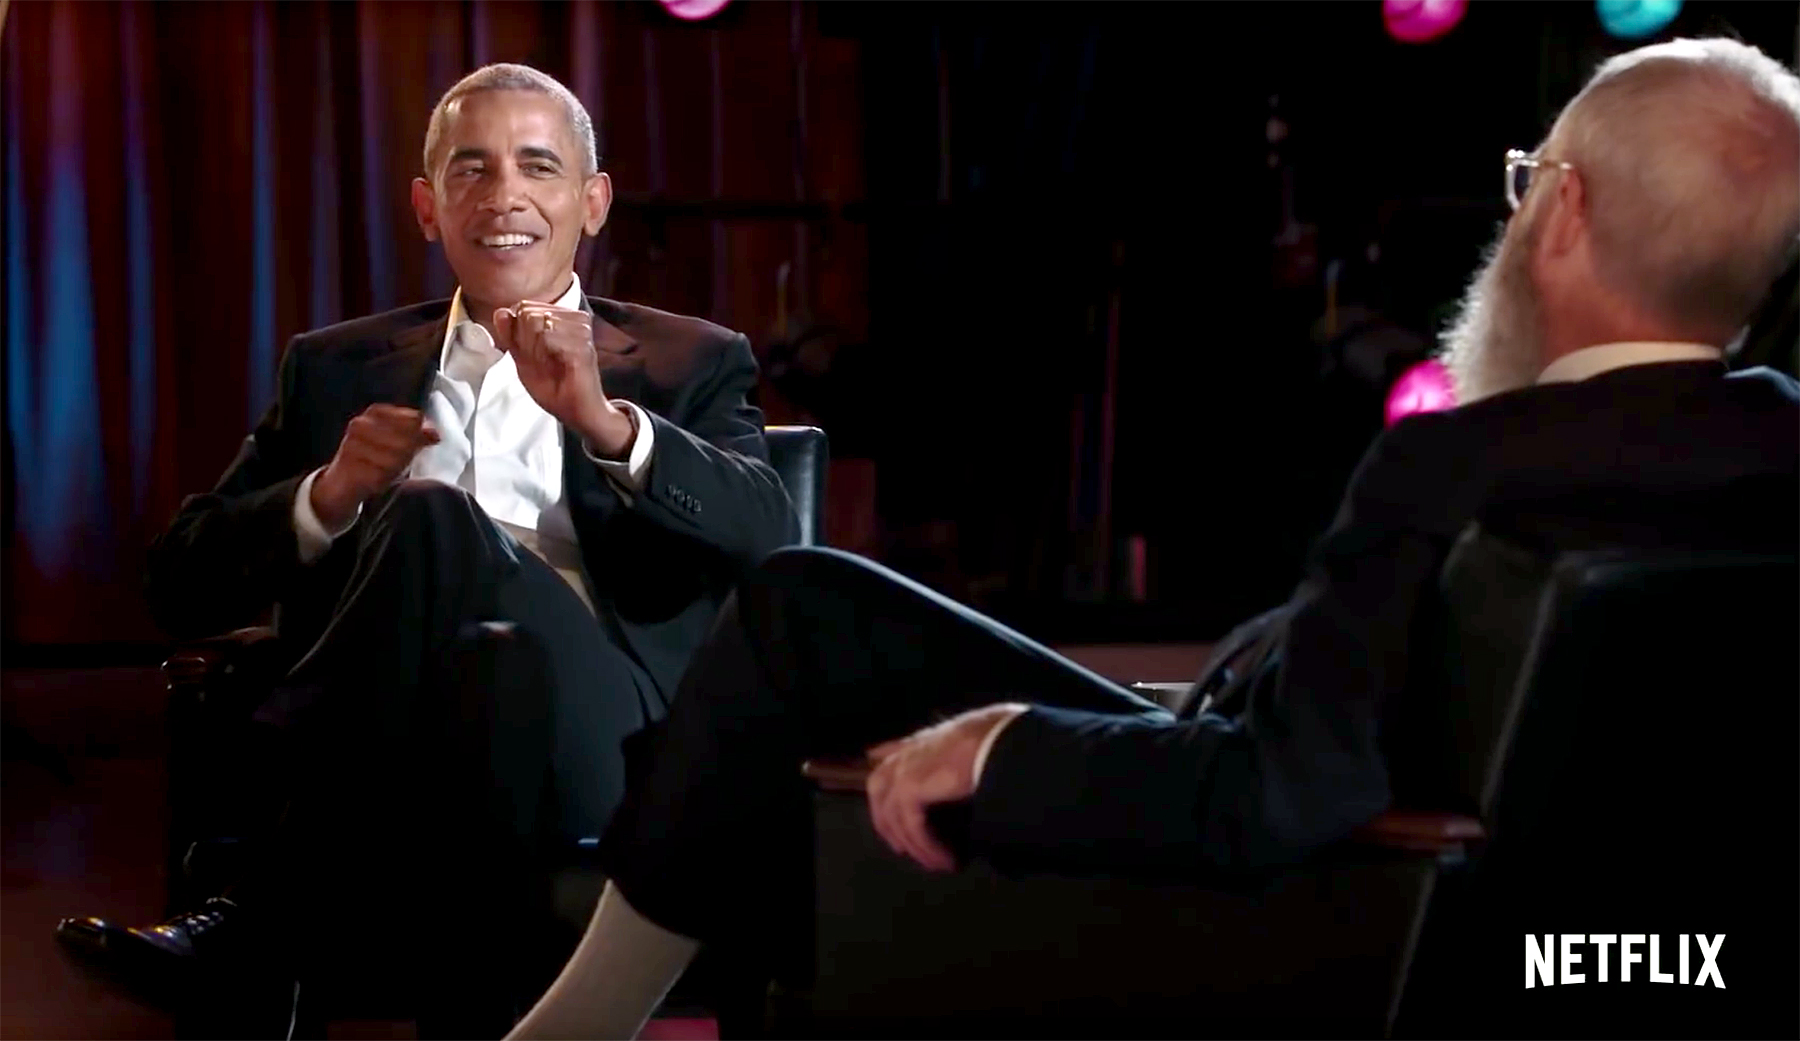 Barack Obama talks dancing with Prince on David Letterman's new Netflix show